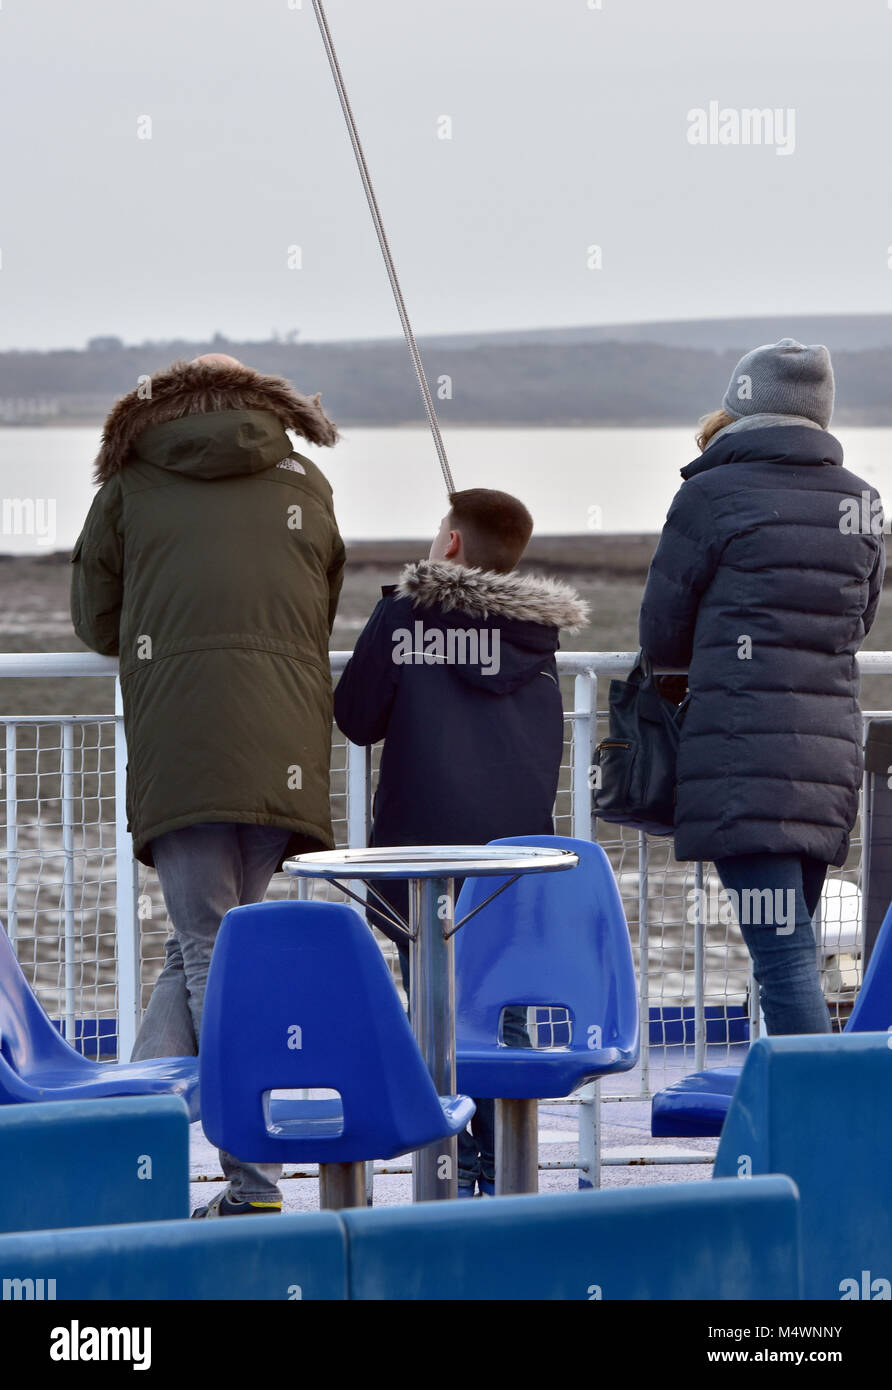 A family of three two adults and a child standing on the upper deck or outside deck of the Isle of Wight car ferry - Stock Image